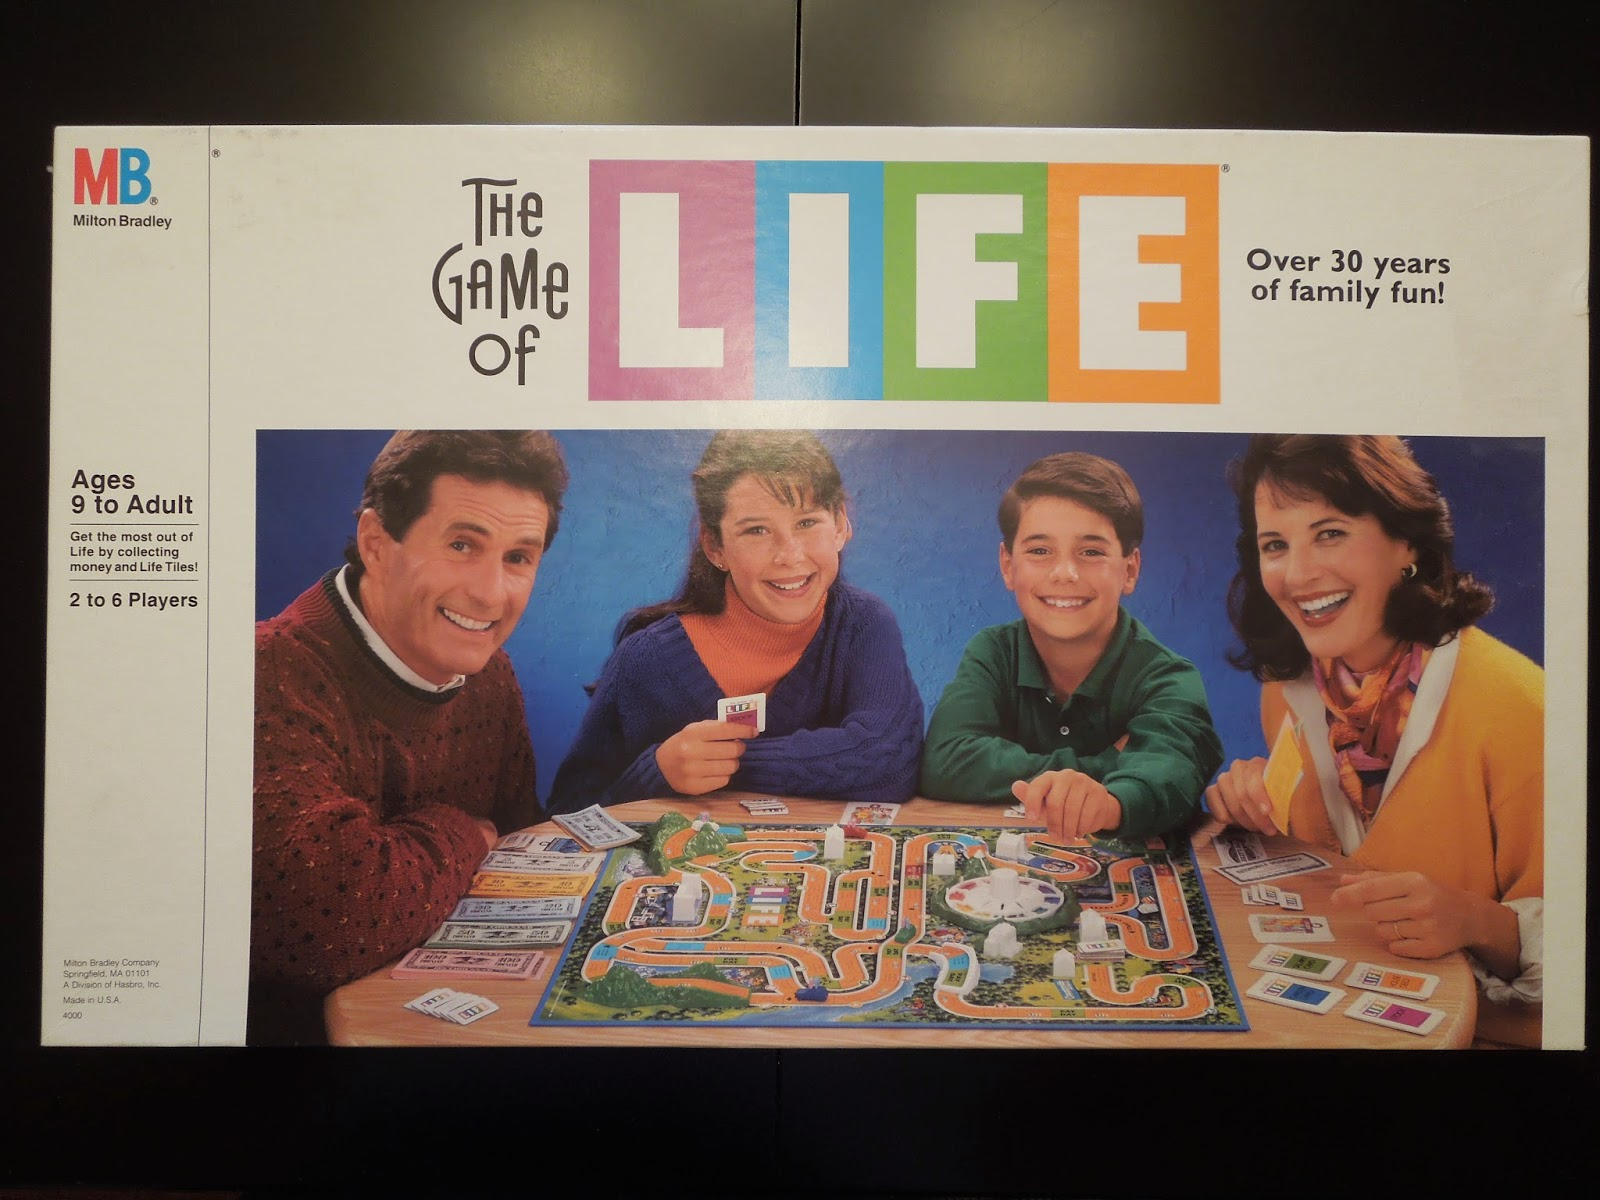 The Game of Life: Playing for Fun